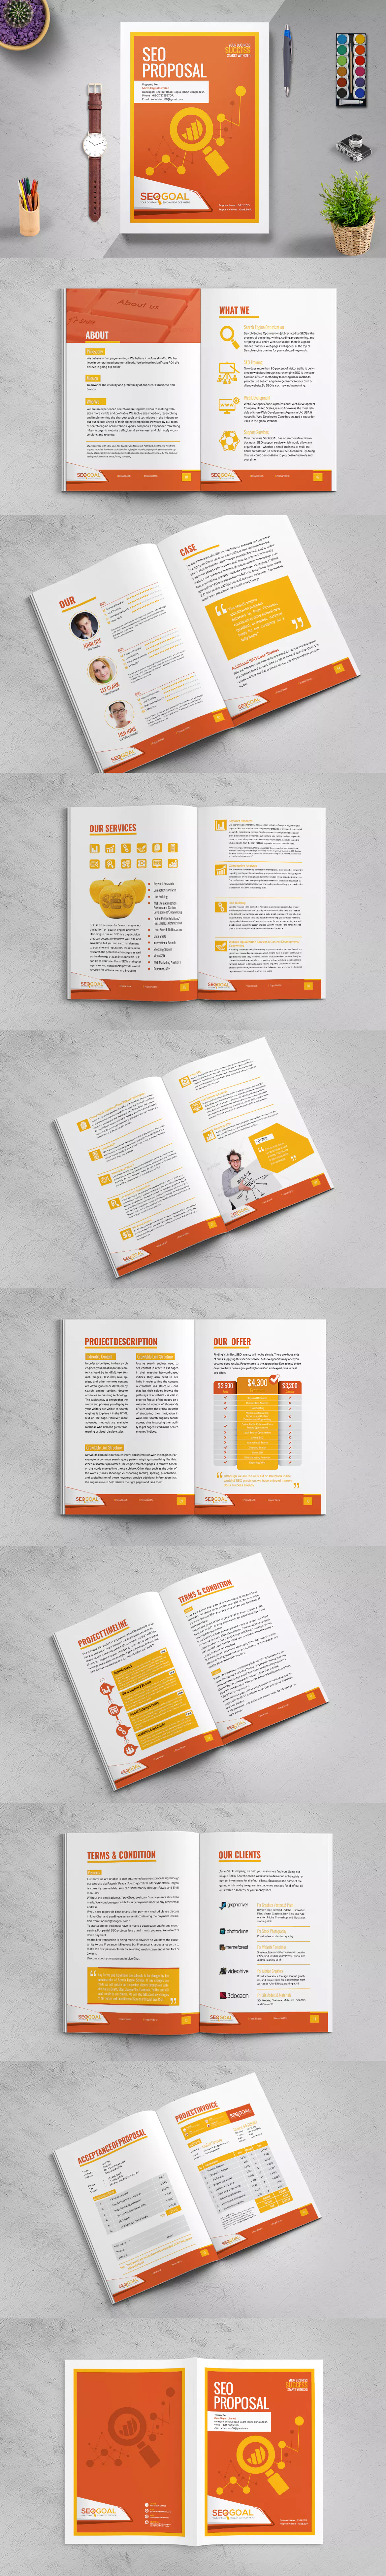 Seo Company Business  Project Proposal Brochure Template Indesign